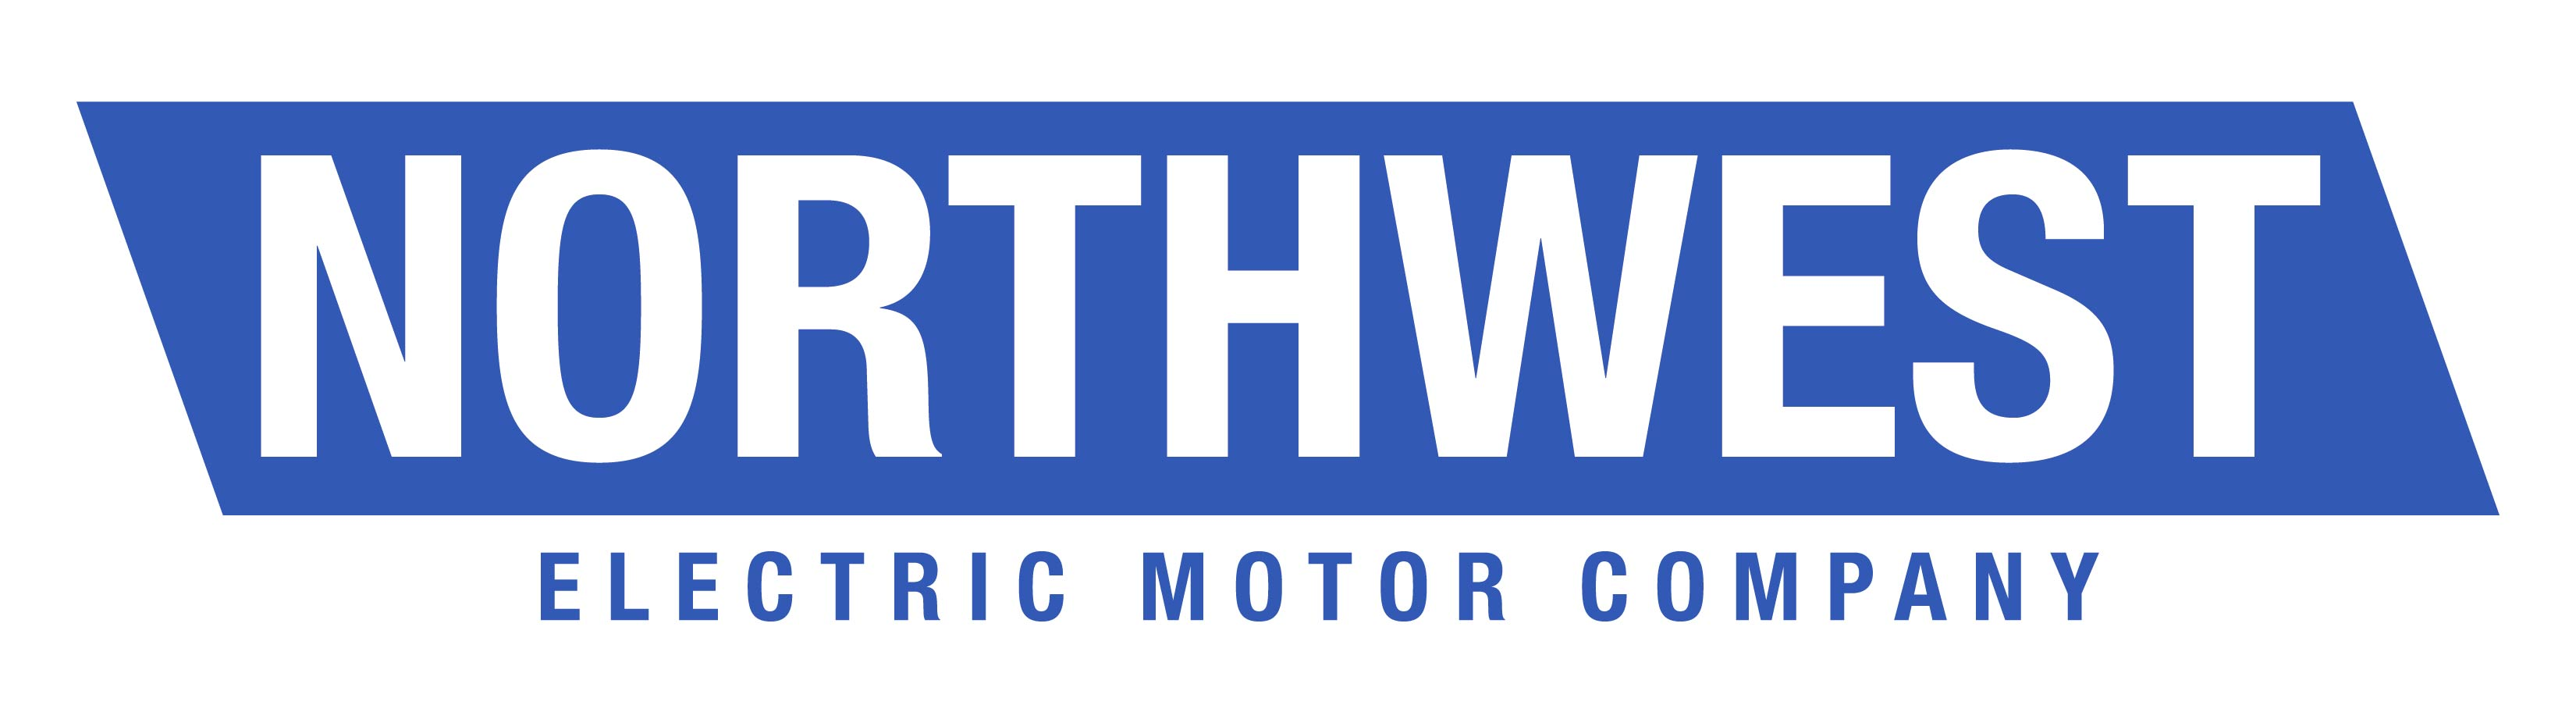 Northwest Electric Motor Company